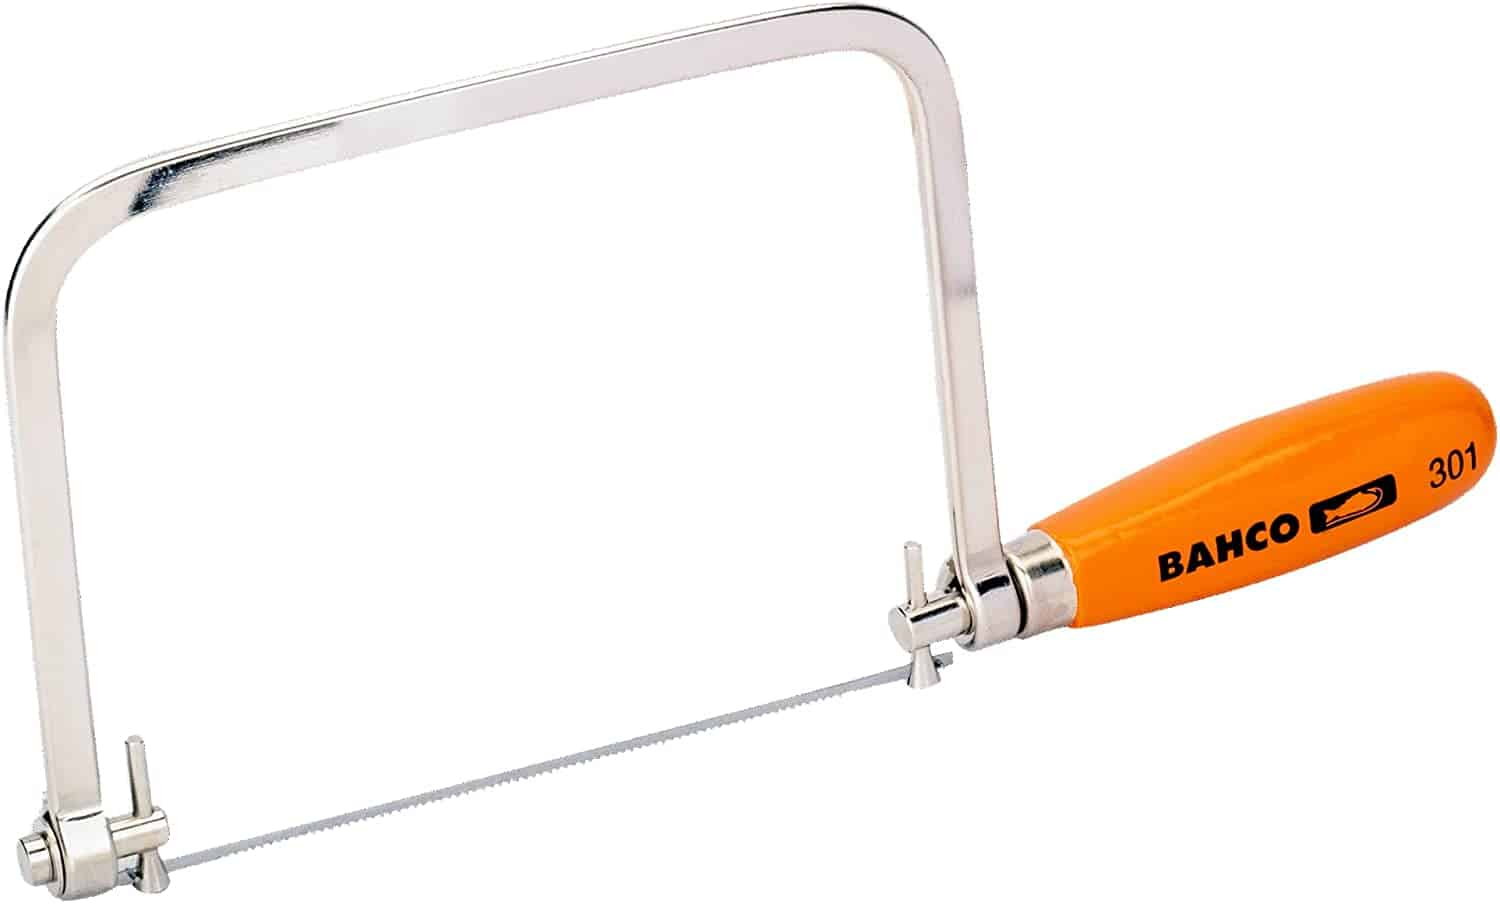 Coping saw with the best frame- Bahco 301